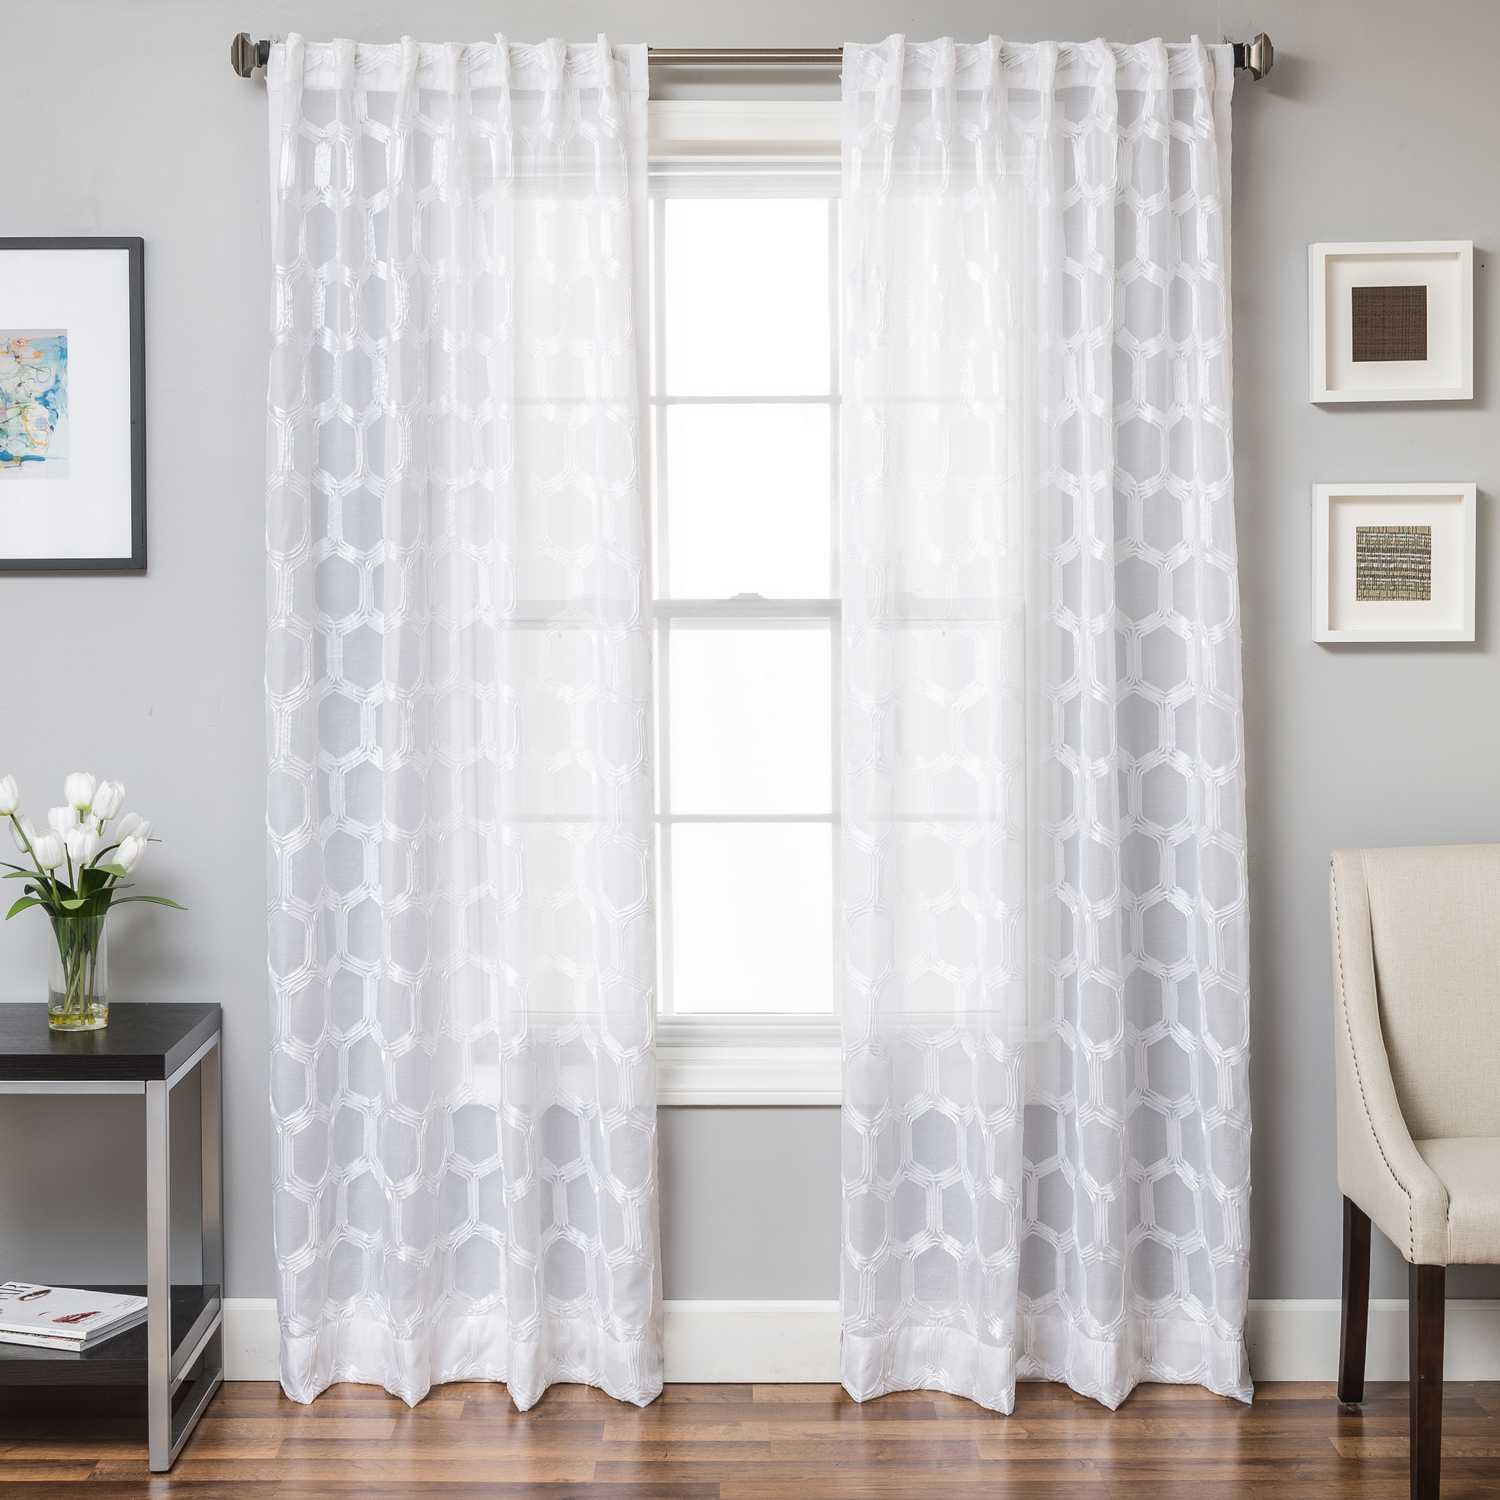 UUU Softline Home Fashions Drapery Bolzano Panel